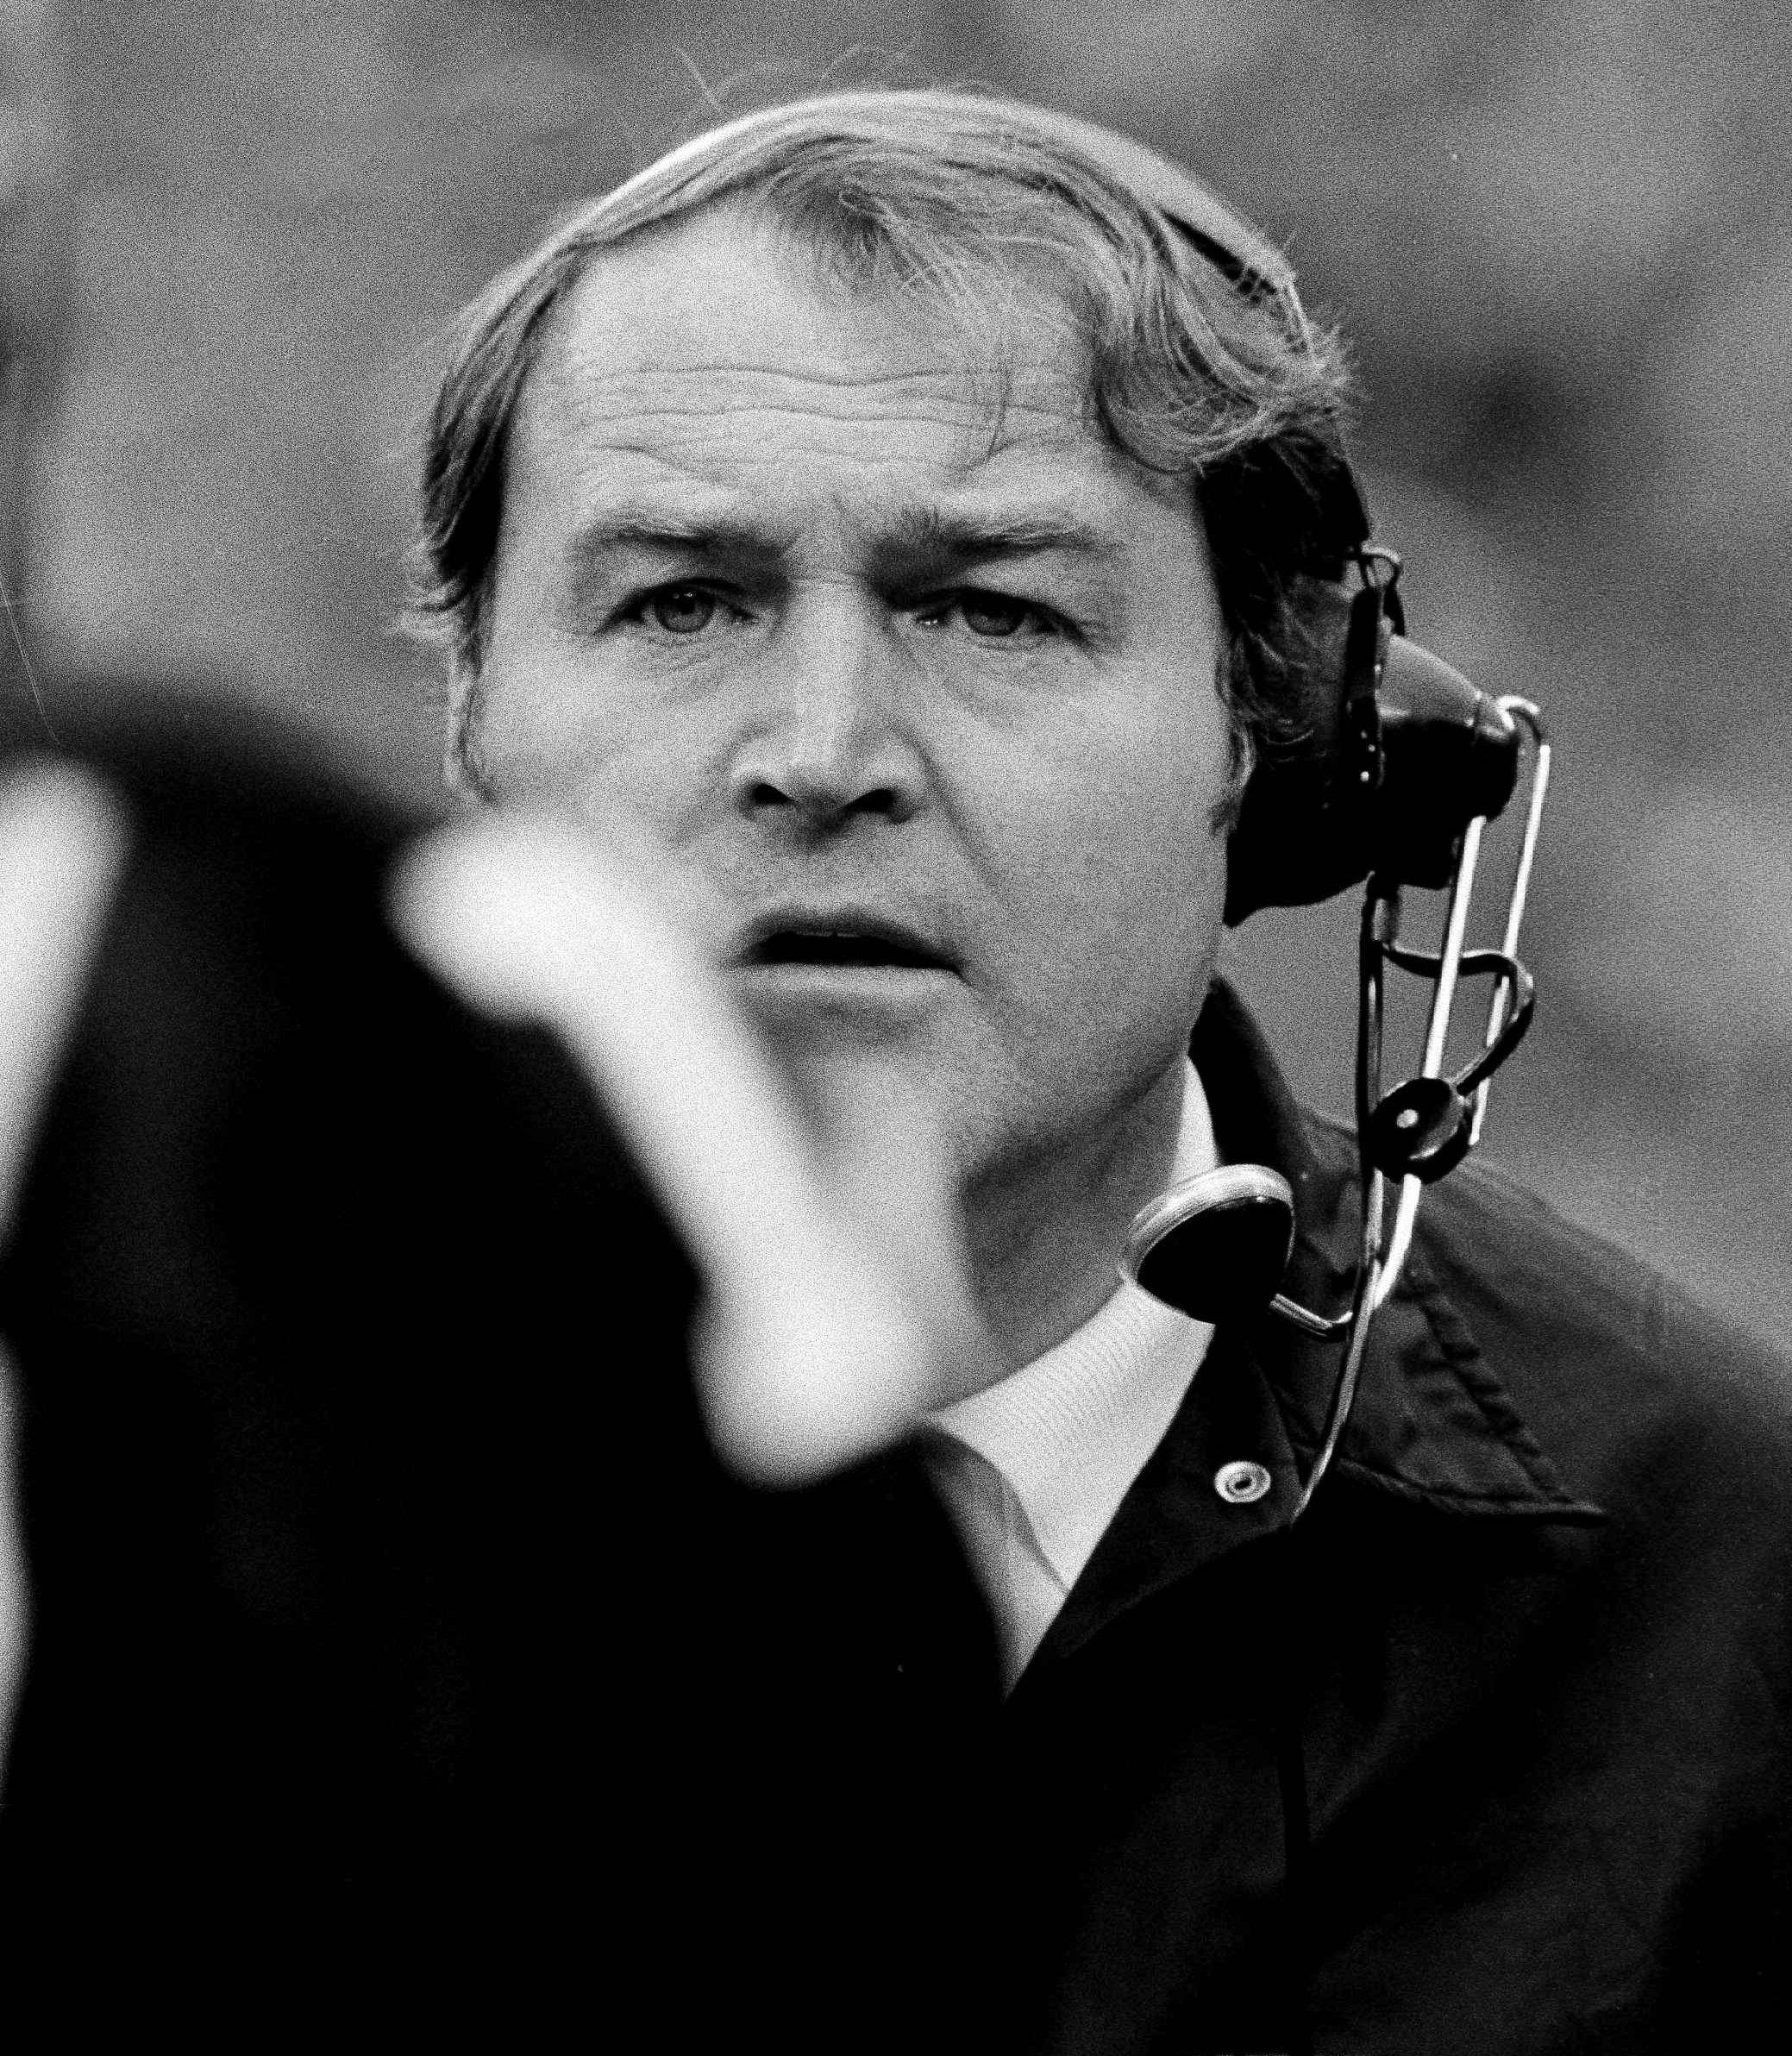 Pittsburgh Steelers head coach Chuck Noll shown in 1974 watching his team in action on the sidelines.